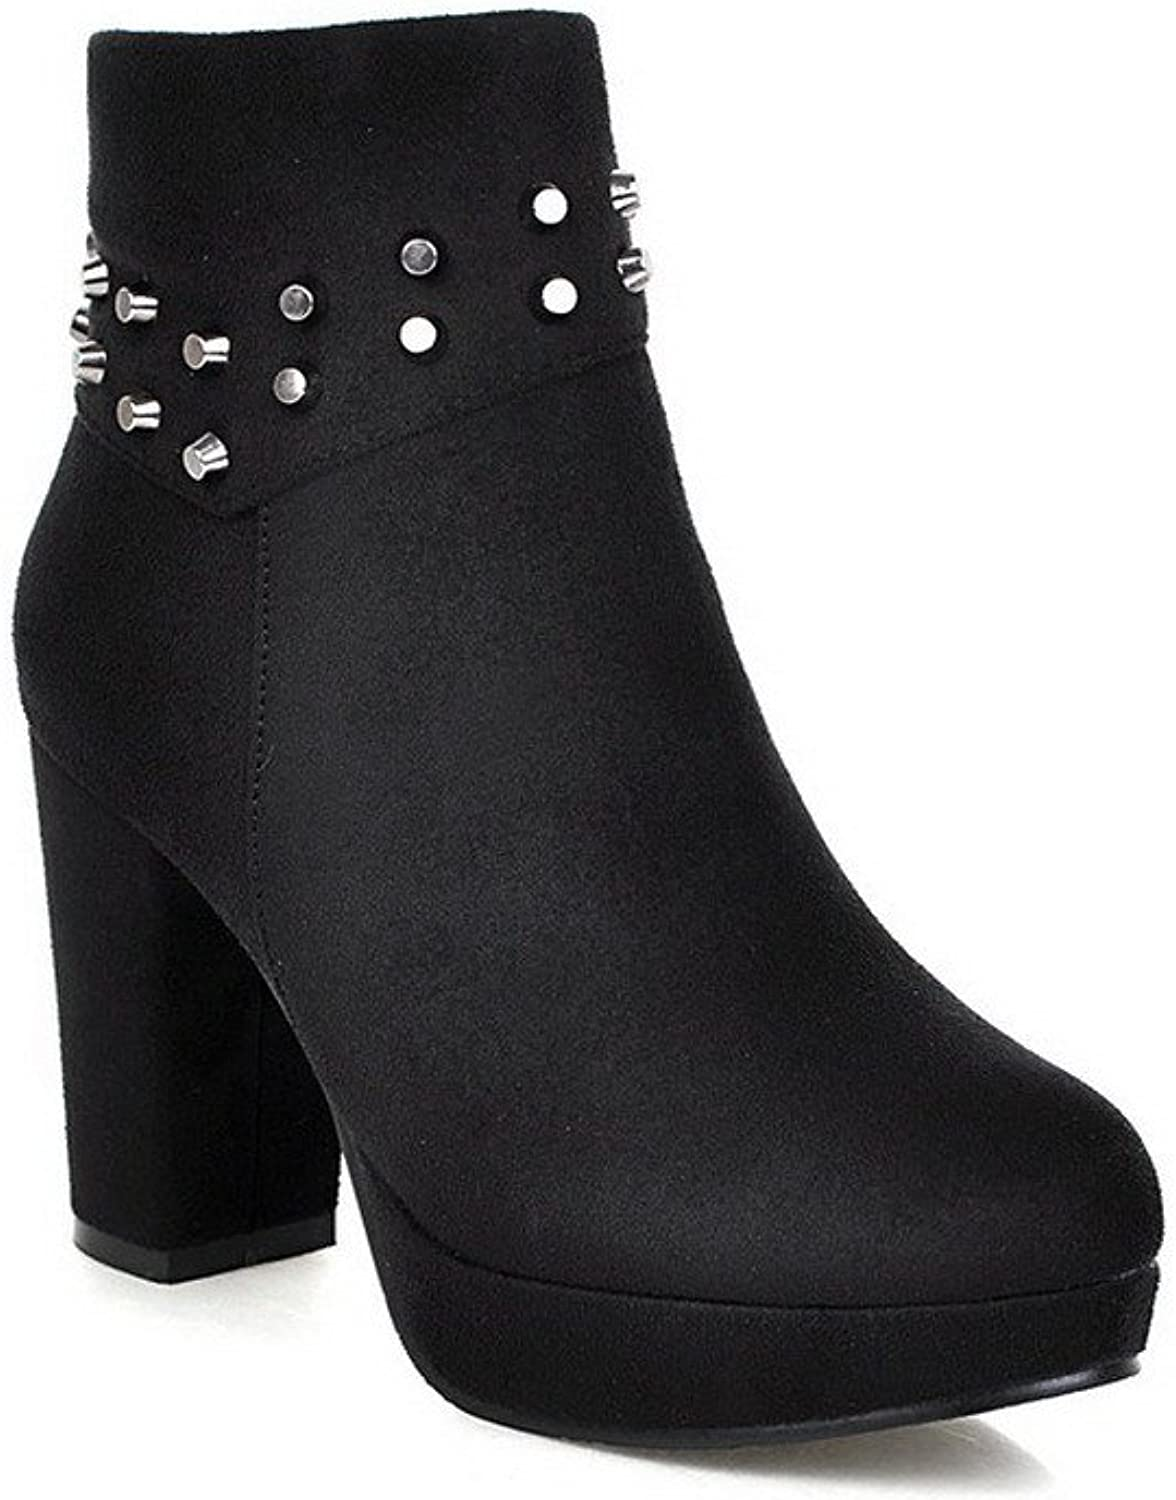 AmoonyFashion Women's Round Toe Closed Toe High Heels Boots with Side Zipper